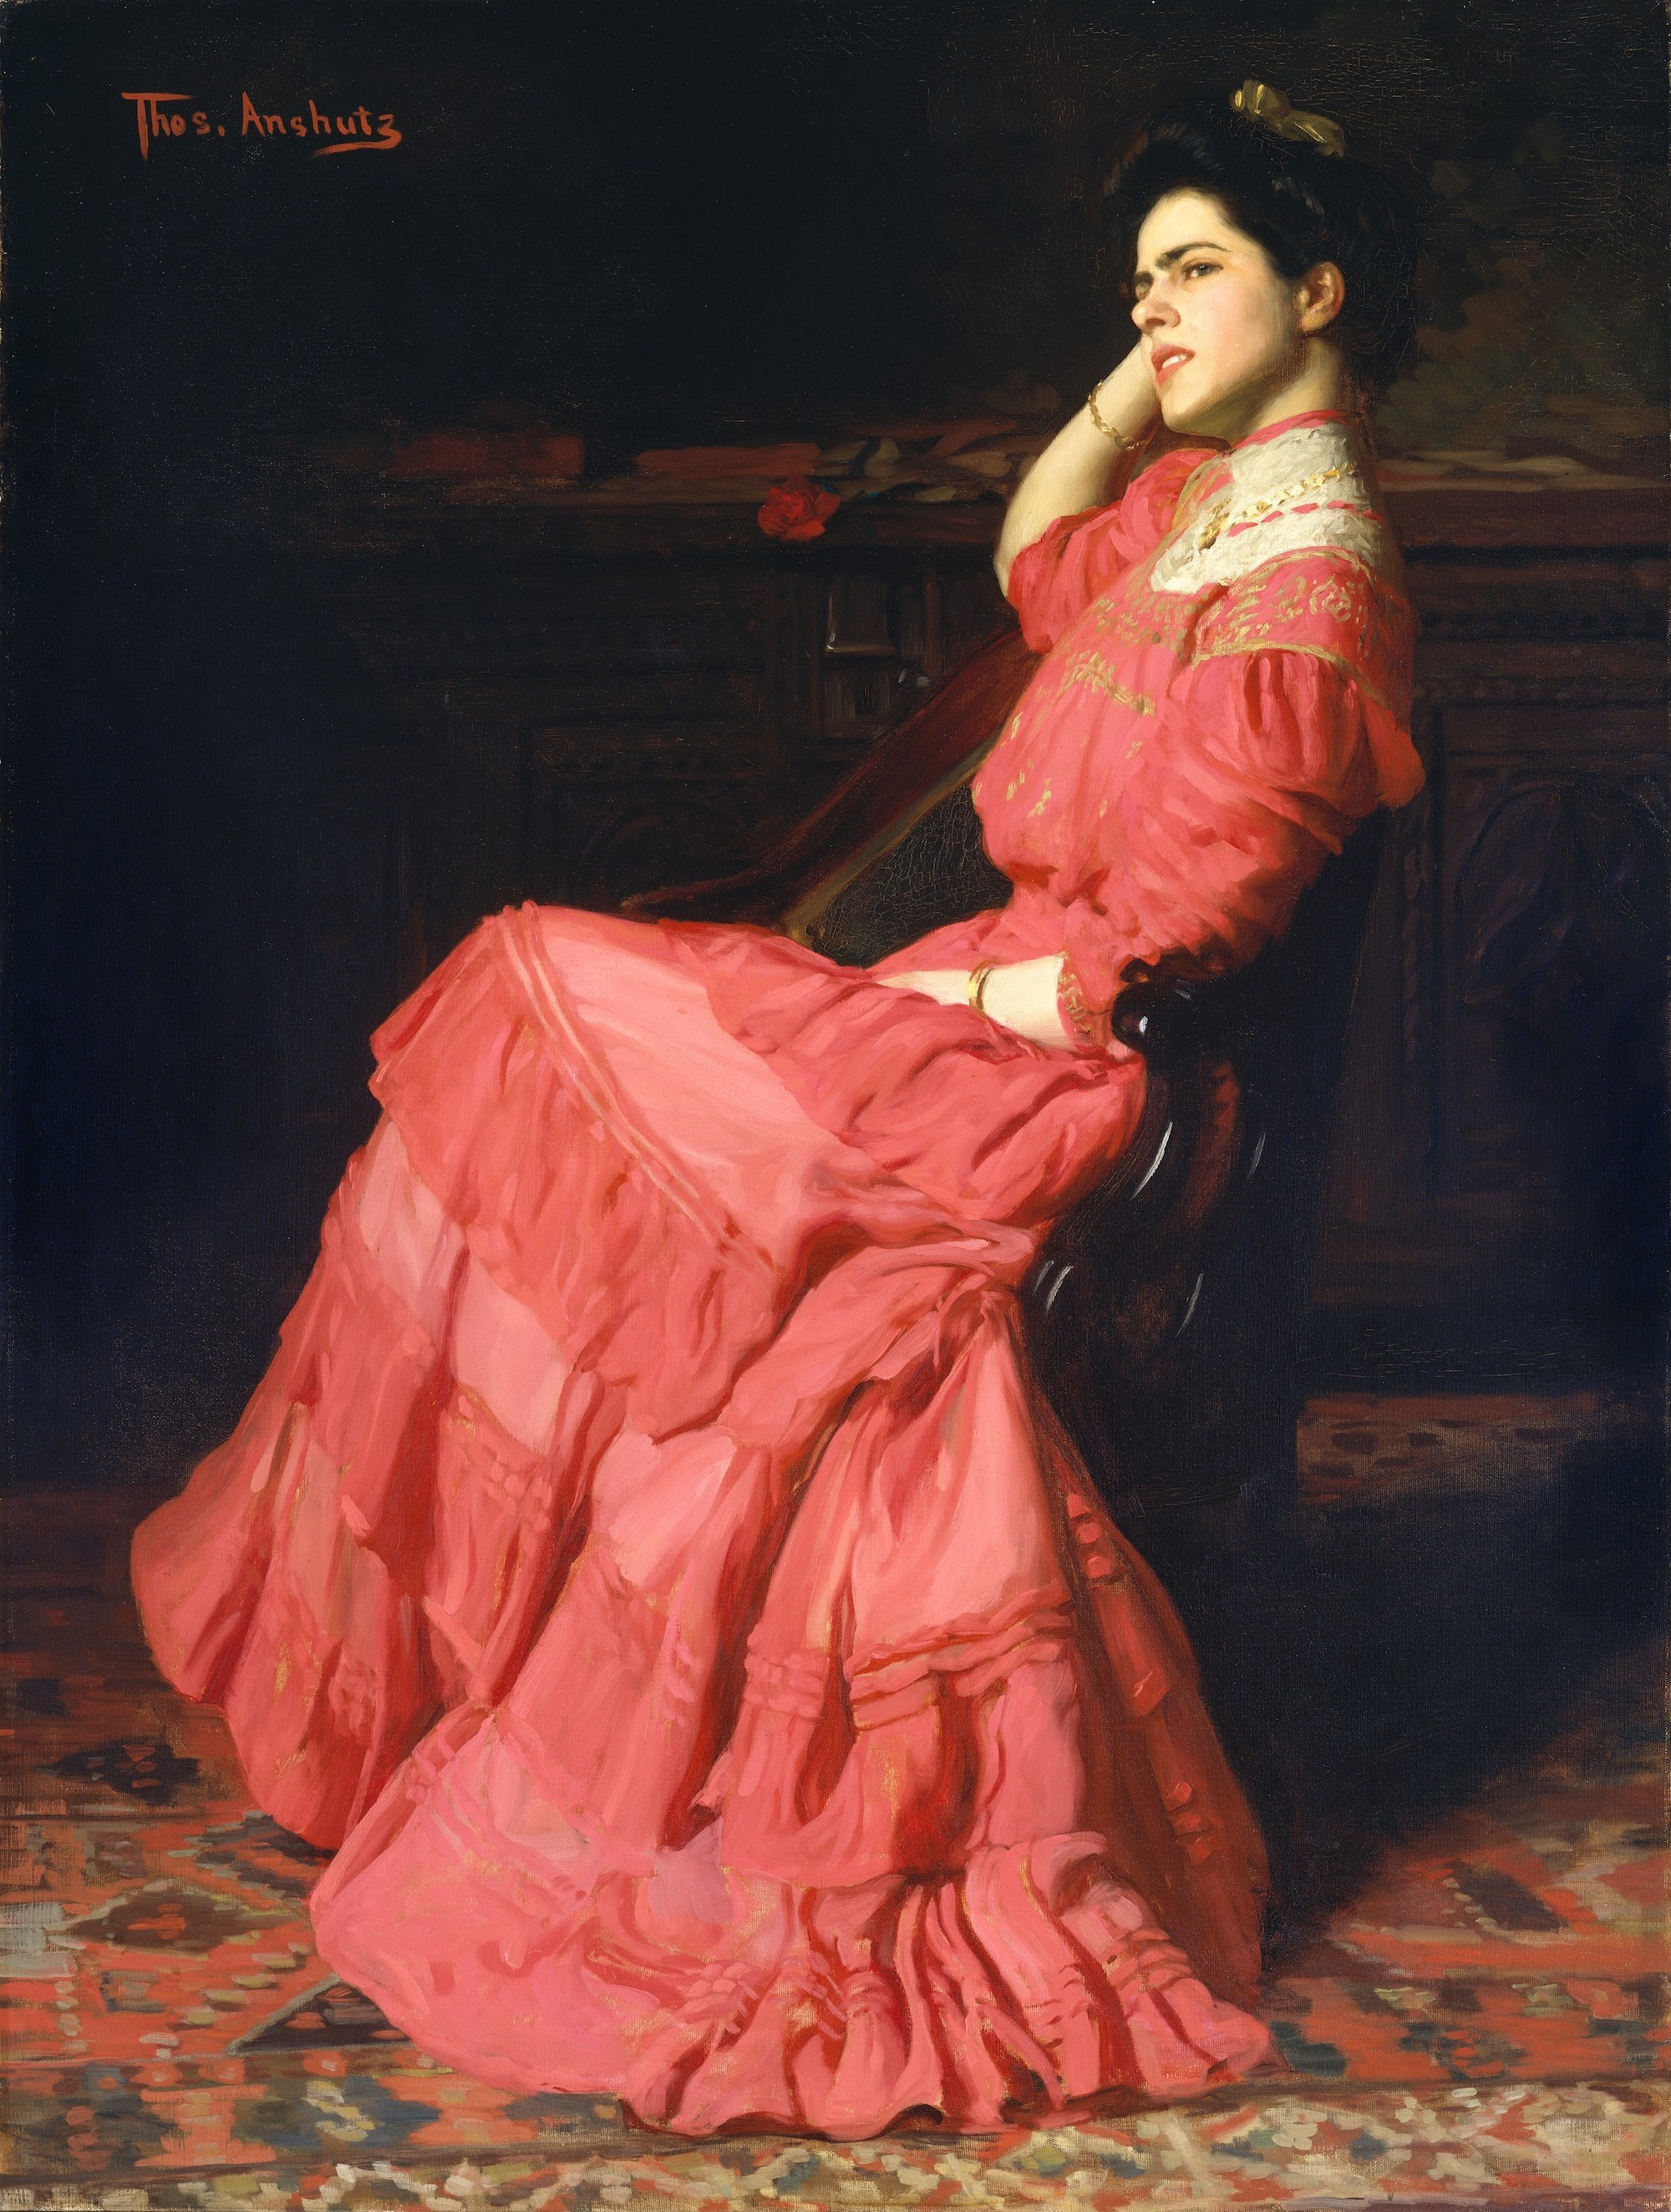 A painting of a young woman in a fluffy pink gown. She is seated in a chair facing sideways. Her head is rested in her hand and she looks skeptical or perhaps perturbed.